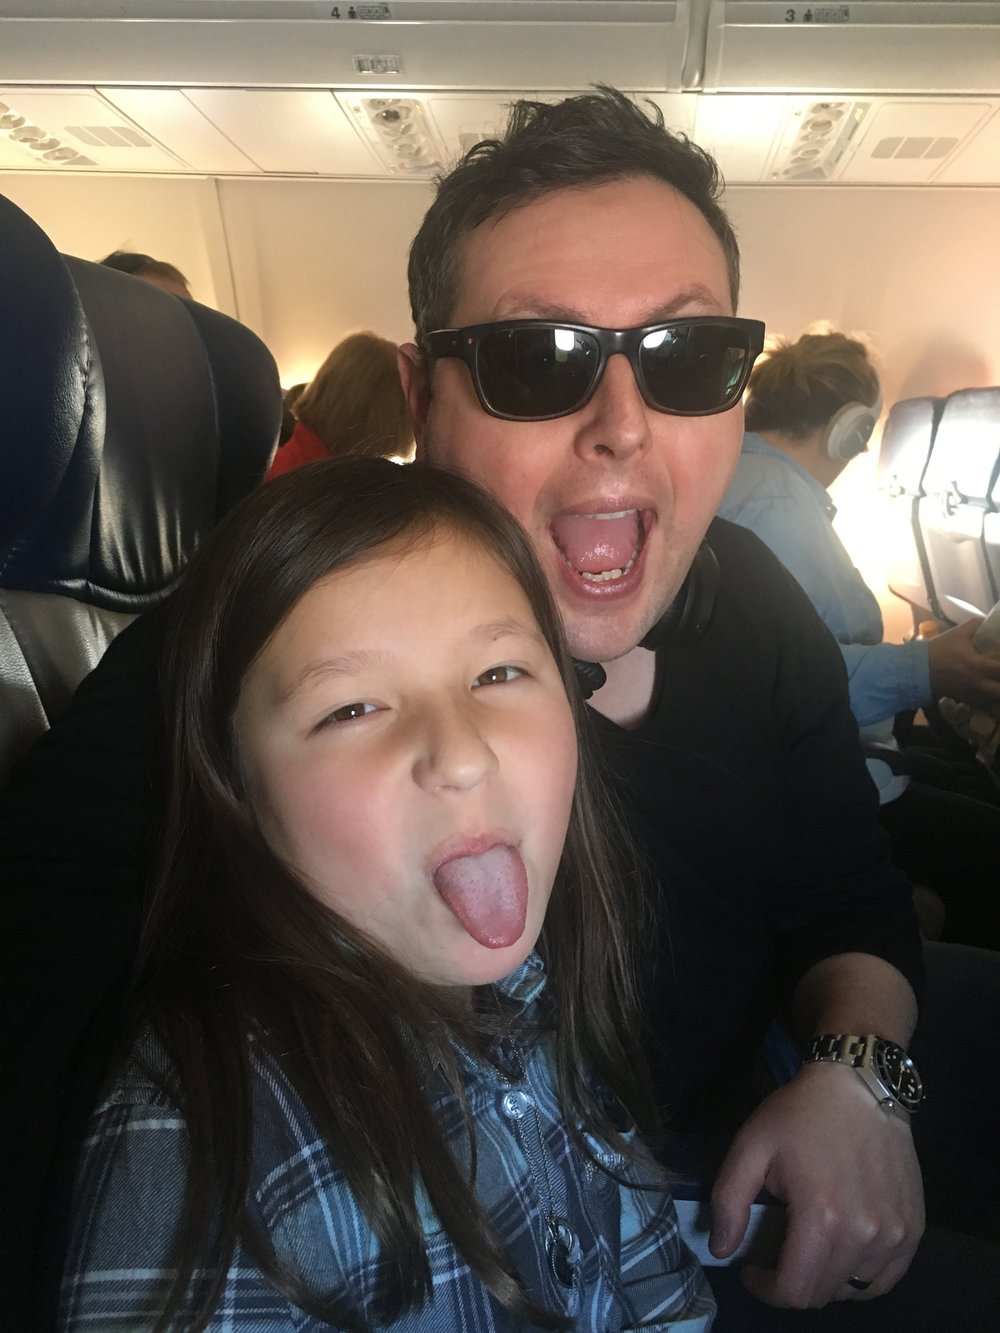 BOB AND EM ON PLANE.JPG